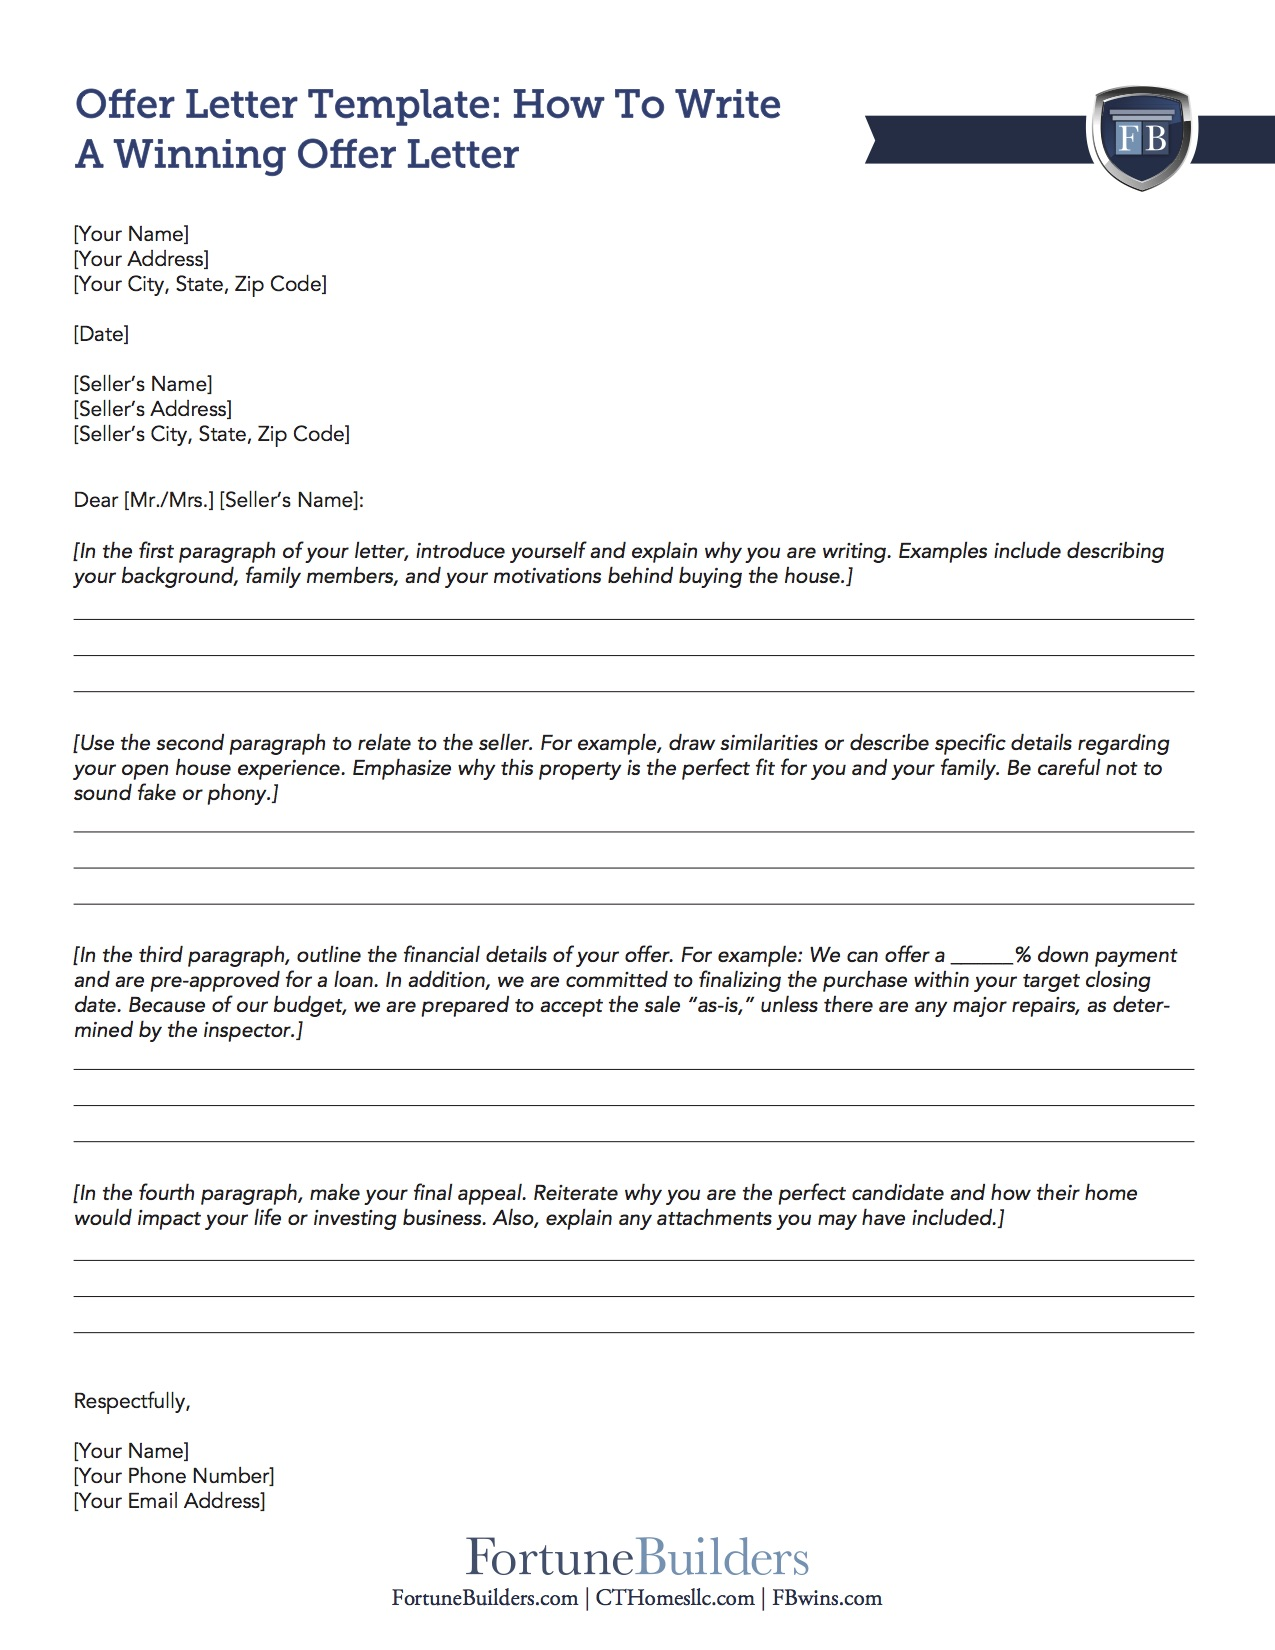 Free offer letter template for home buyers investors fortunebuilders click the image below to download the offer letter template which provides a professional layout and will help you brainstorm talking points for when you spiritdancerdesigns Image collections